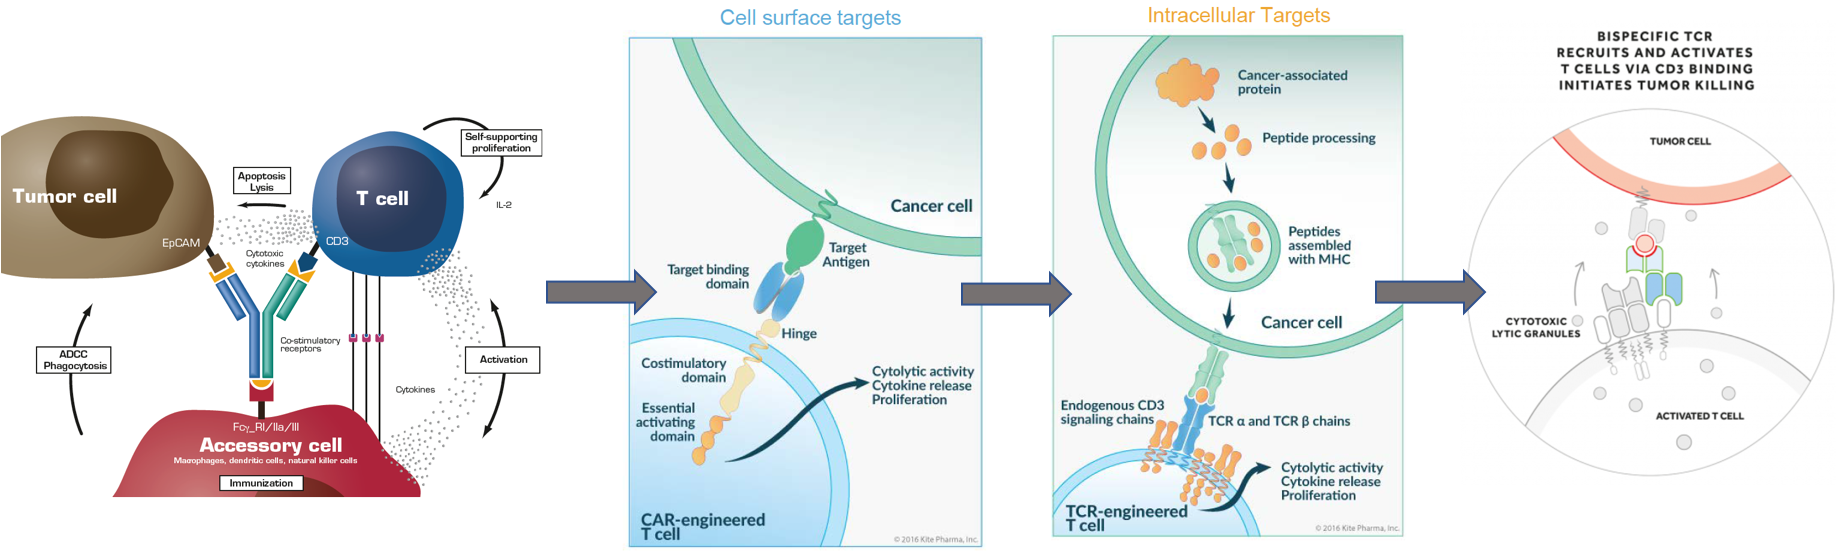 Figure 1: Harnessing the power of the immune system - From bispecific antibodies [4] to CAR-Ts [5] and TCRs [5] up to bispecific TCRs [6]